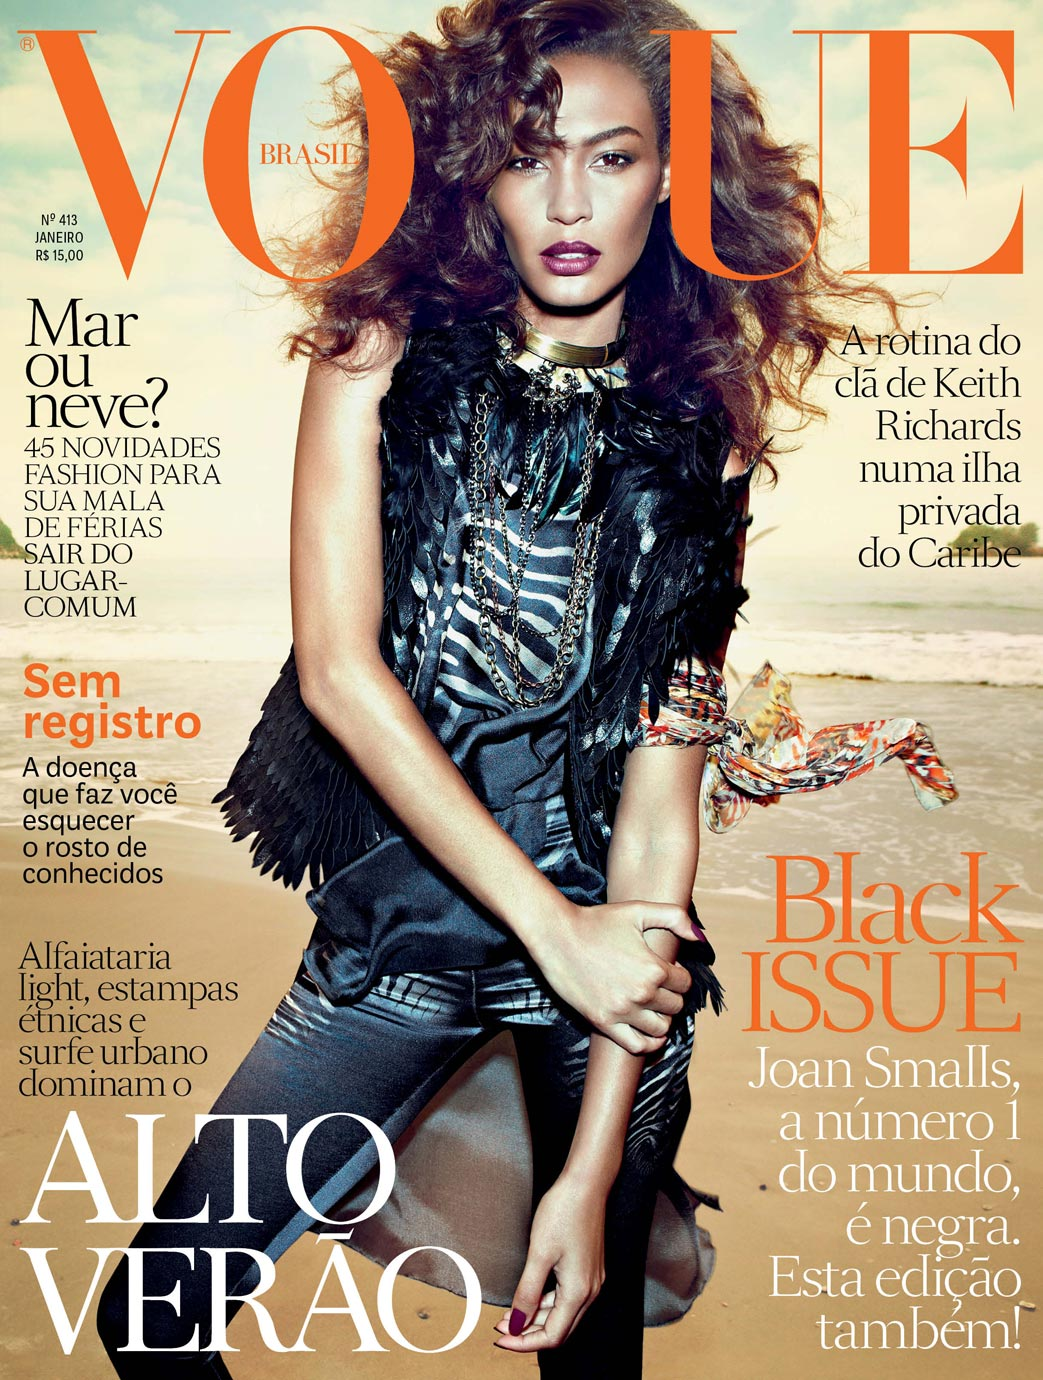 Joan Smalls For Vogue Brazil January 2013